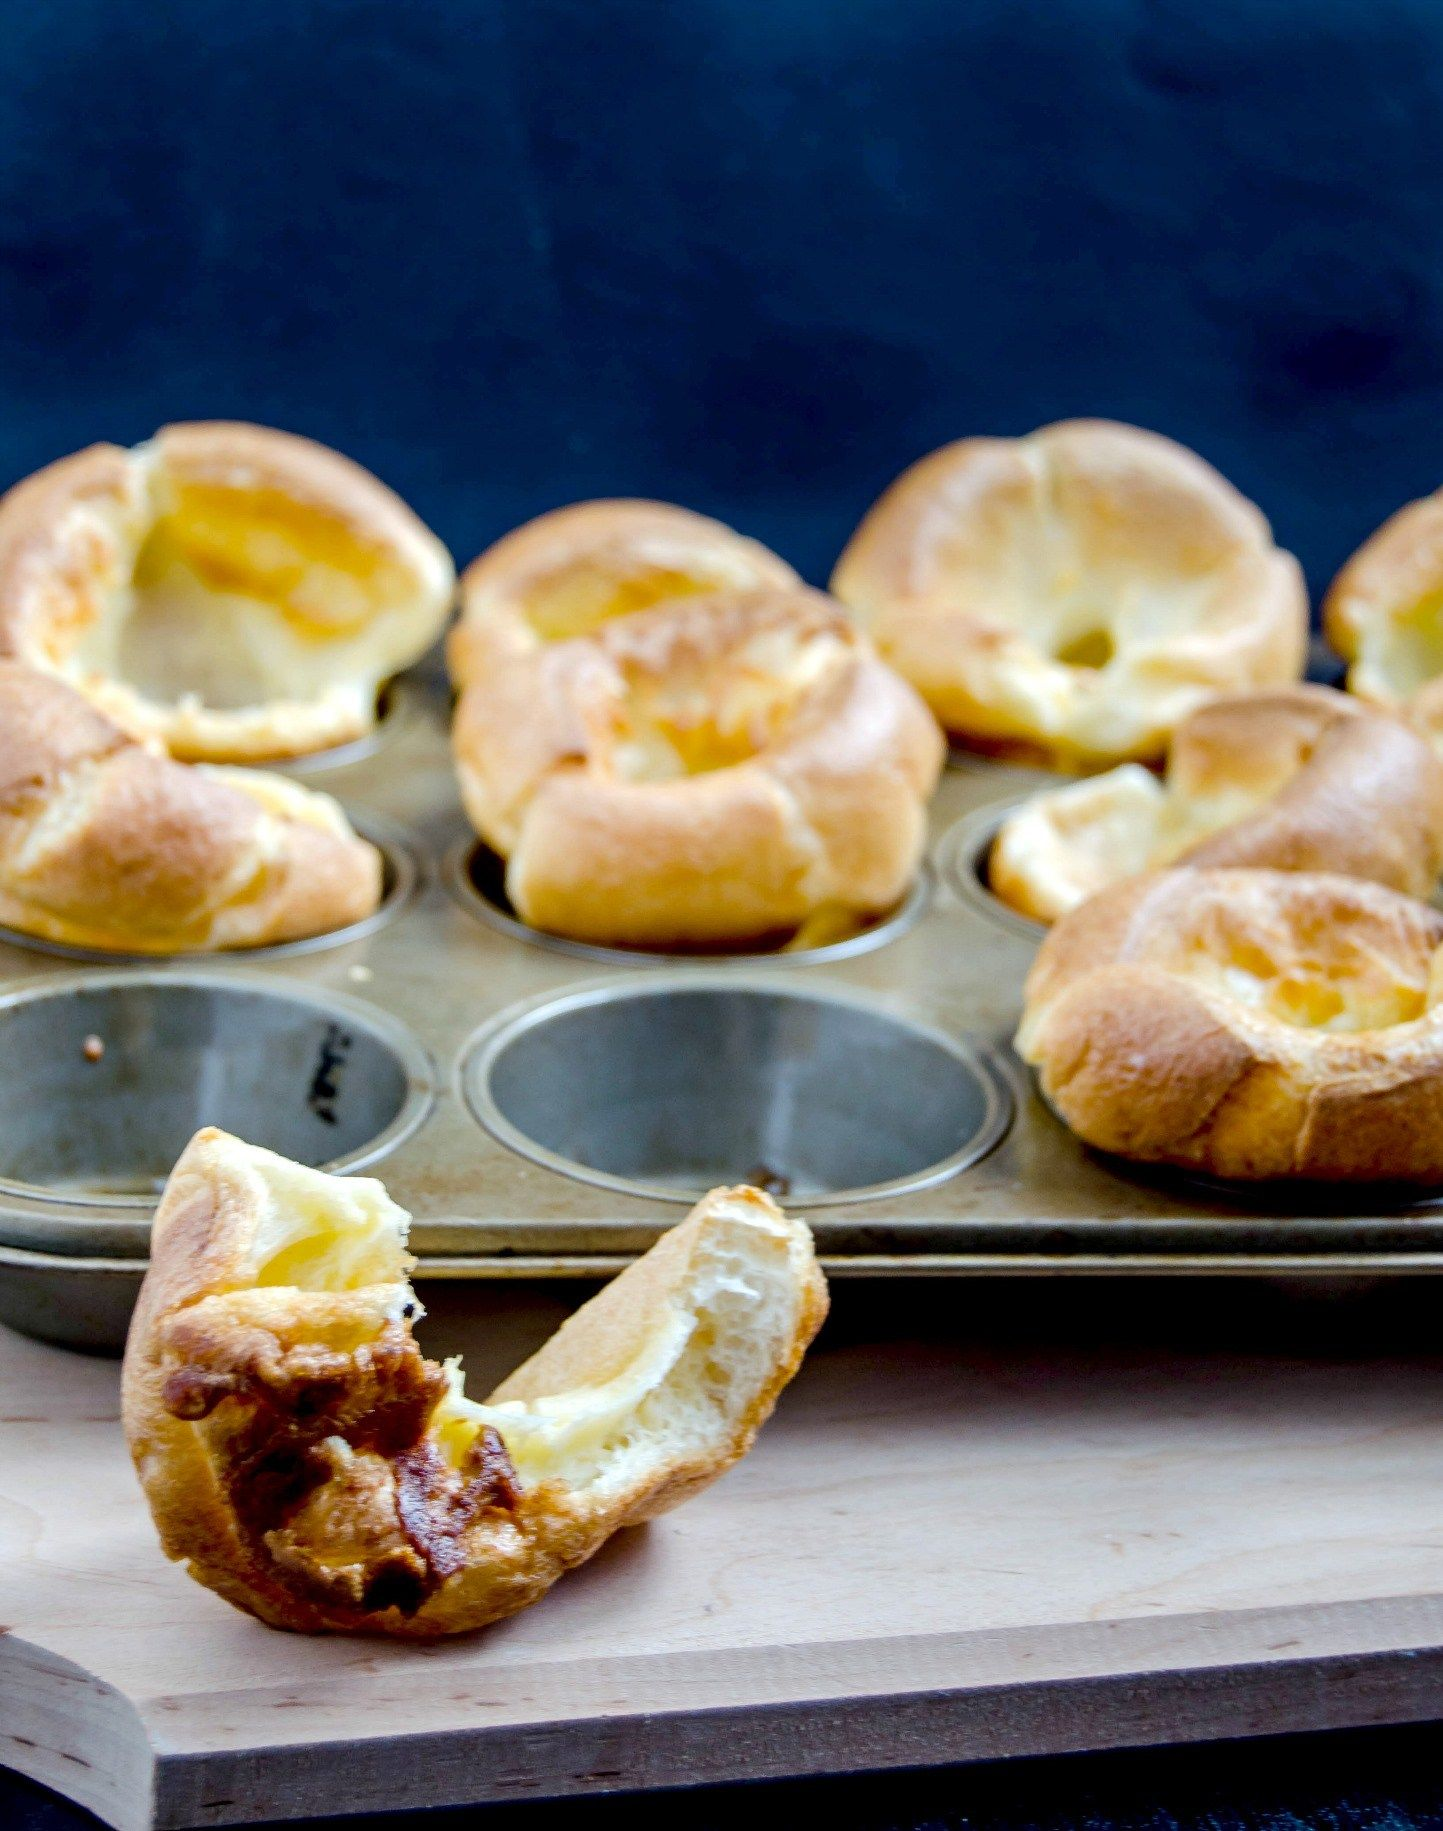 Popovers Yorkshire Puddings Recipe Sweets Recipes Yorkshire Pudding Homemade Popovers